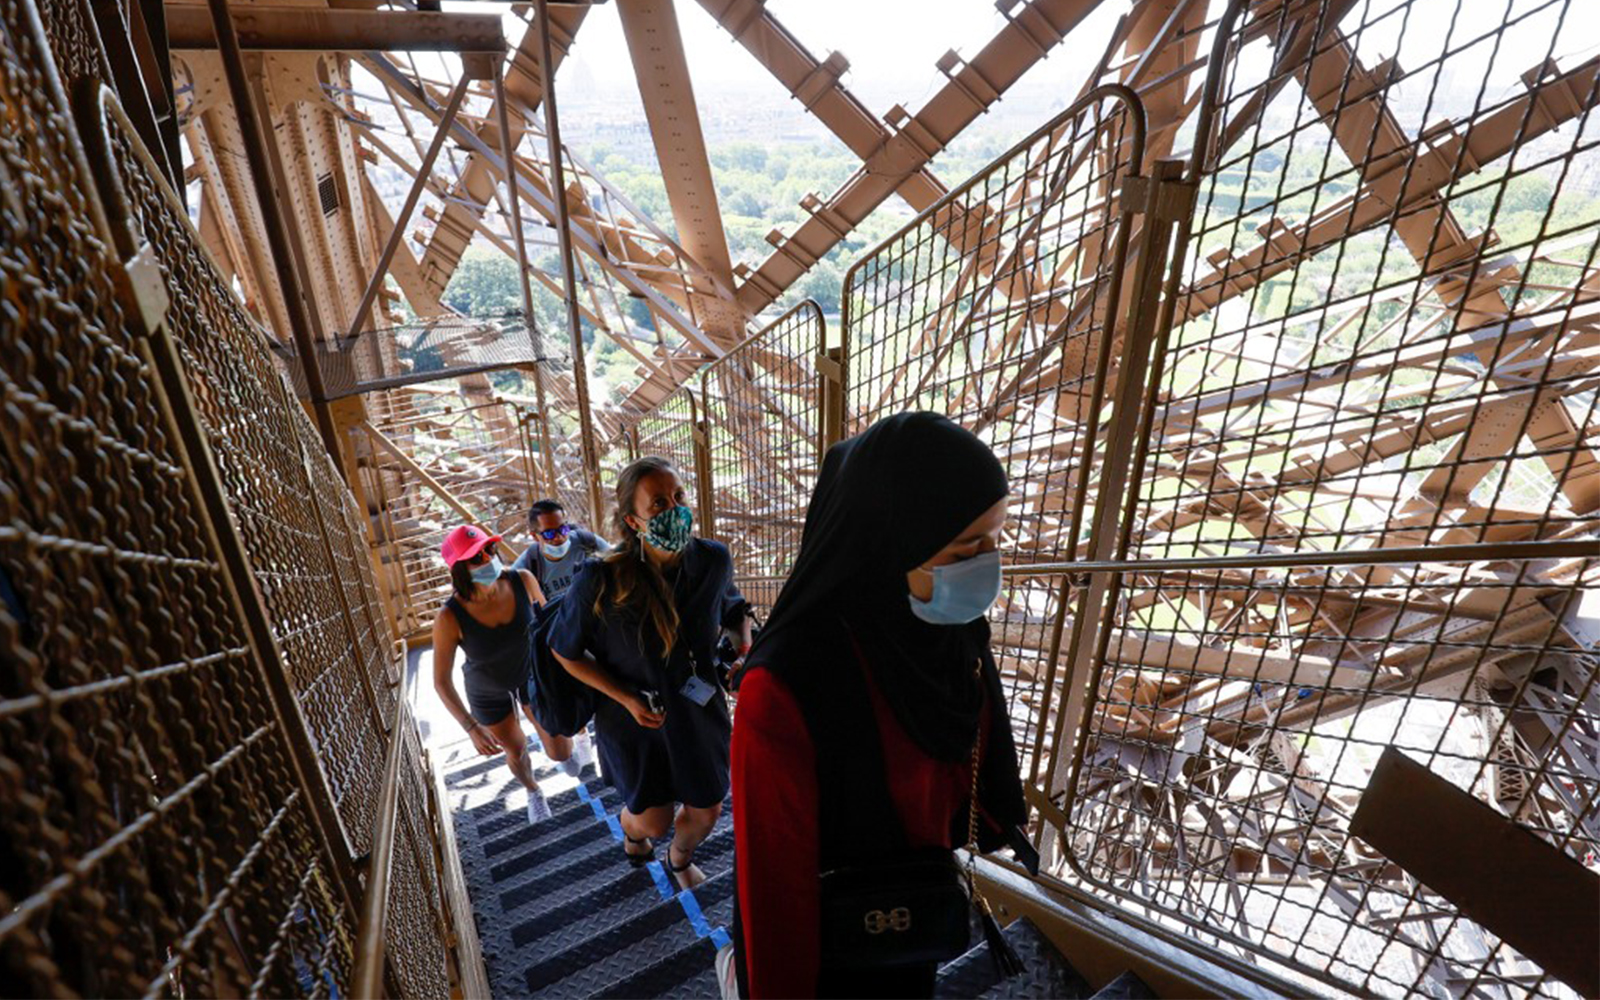 Visitors wearing protective masks walk up the stairs of the Eiffel Tower during its partial reopening in Paris, June 25, 2020. (Thomas Samson/AFP)